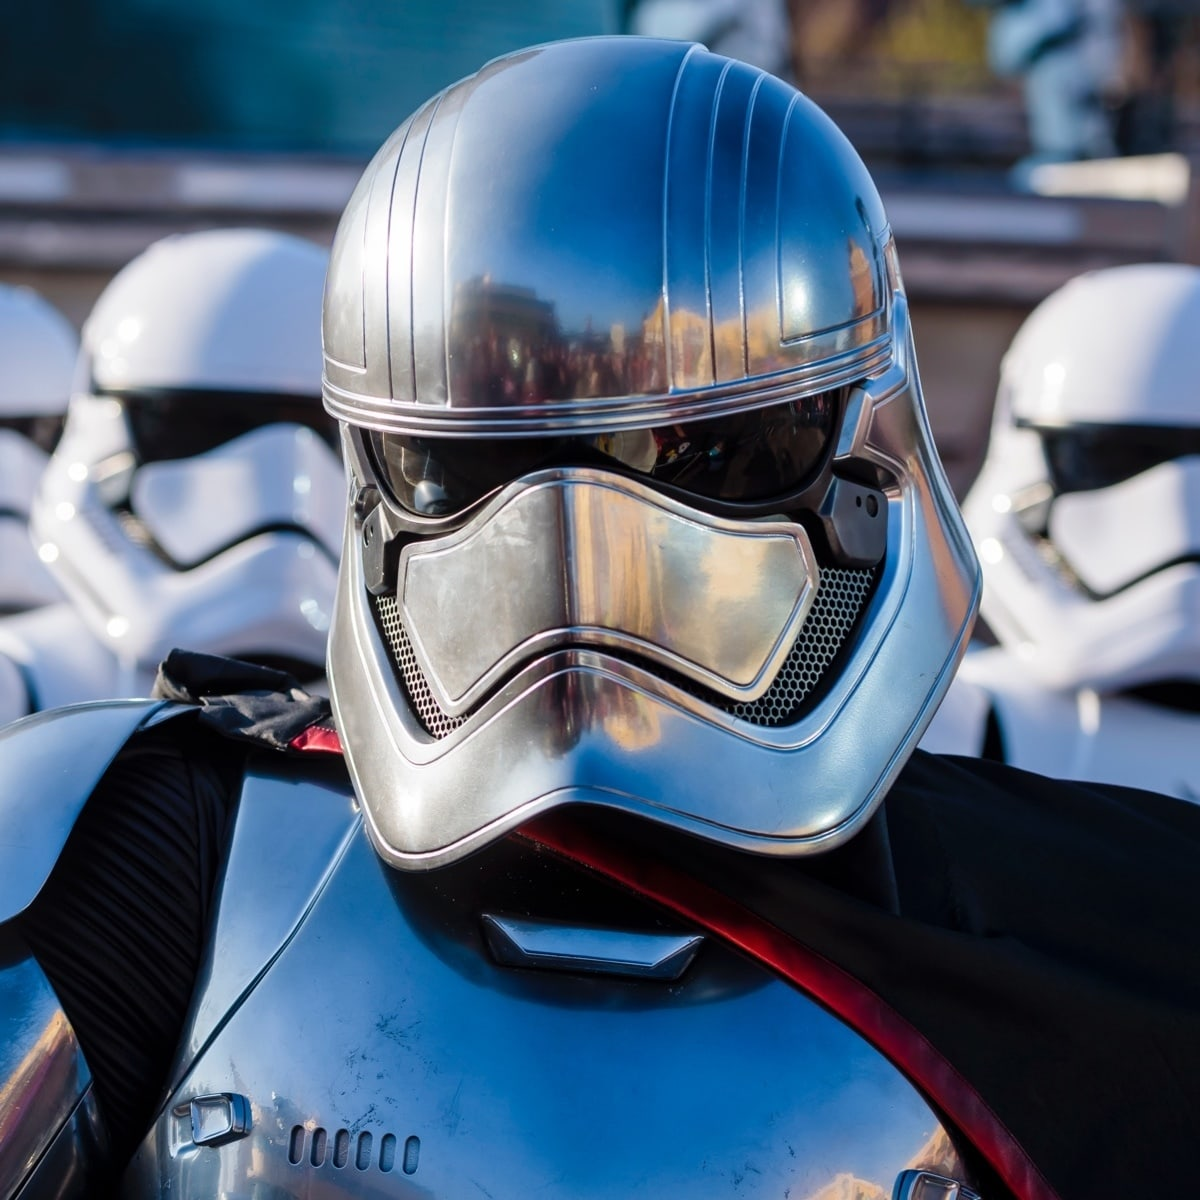 Disneyland Paris | Star Wars Season of the Force